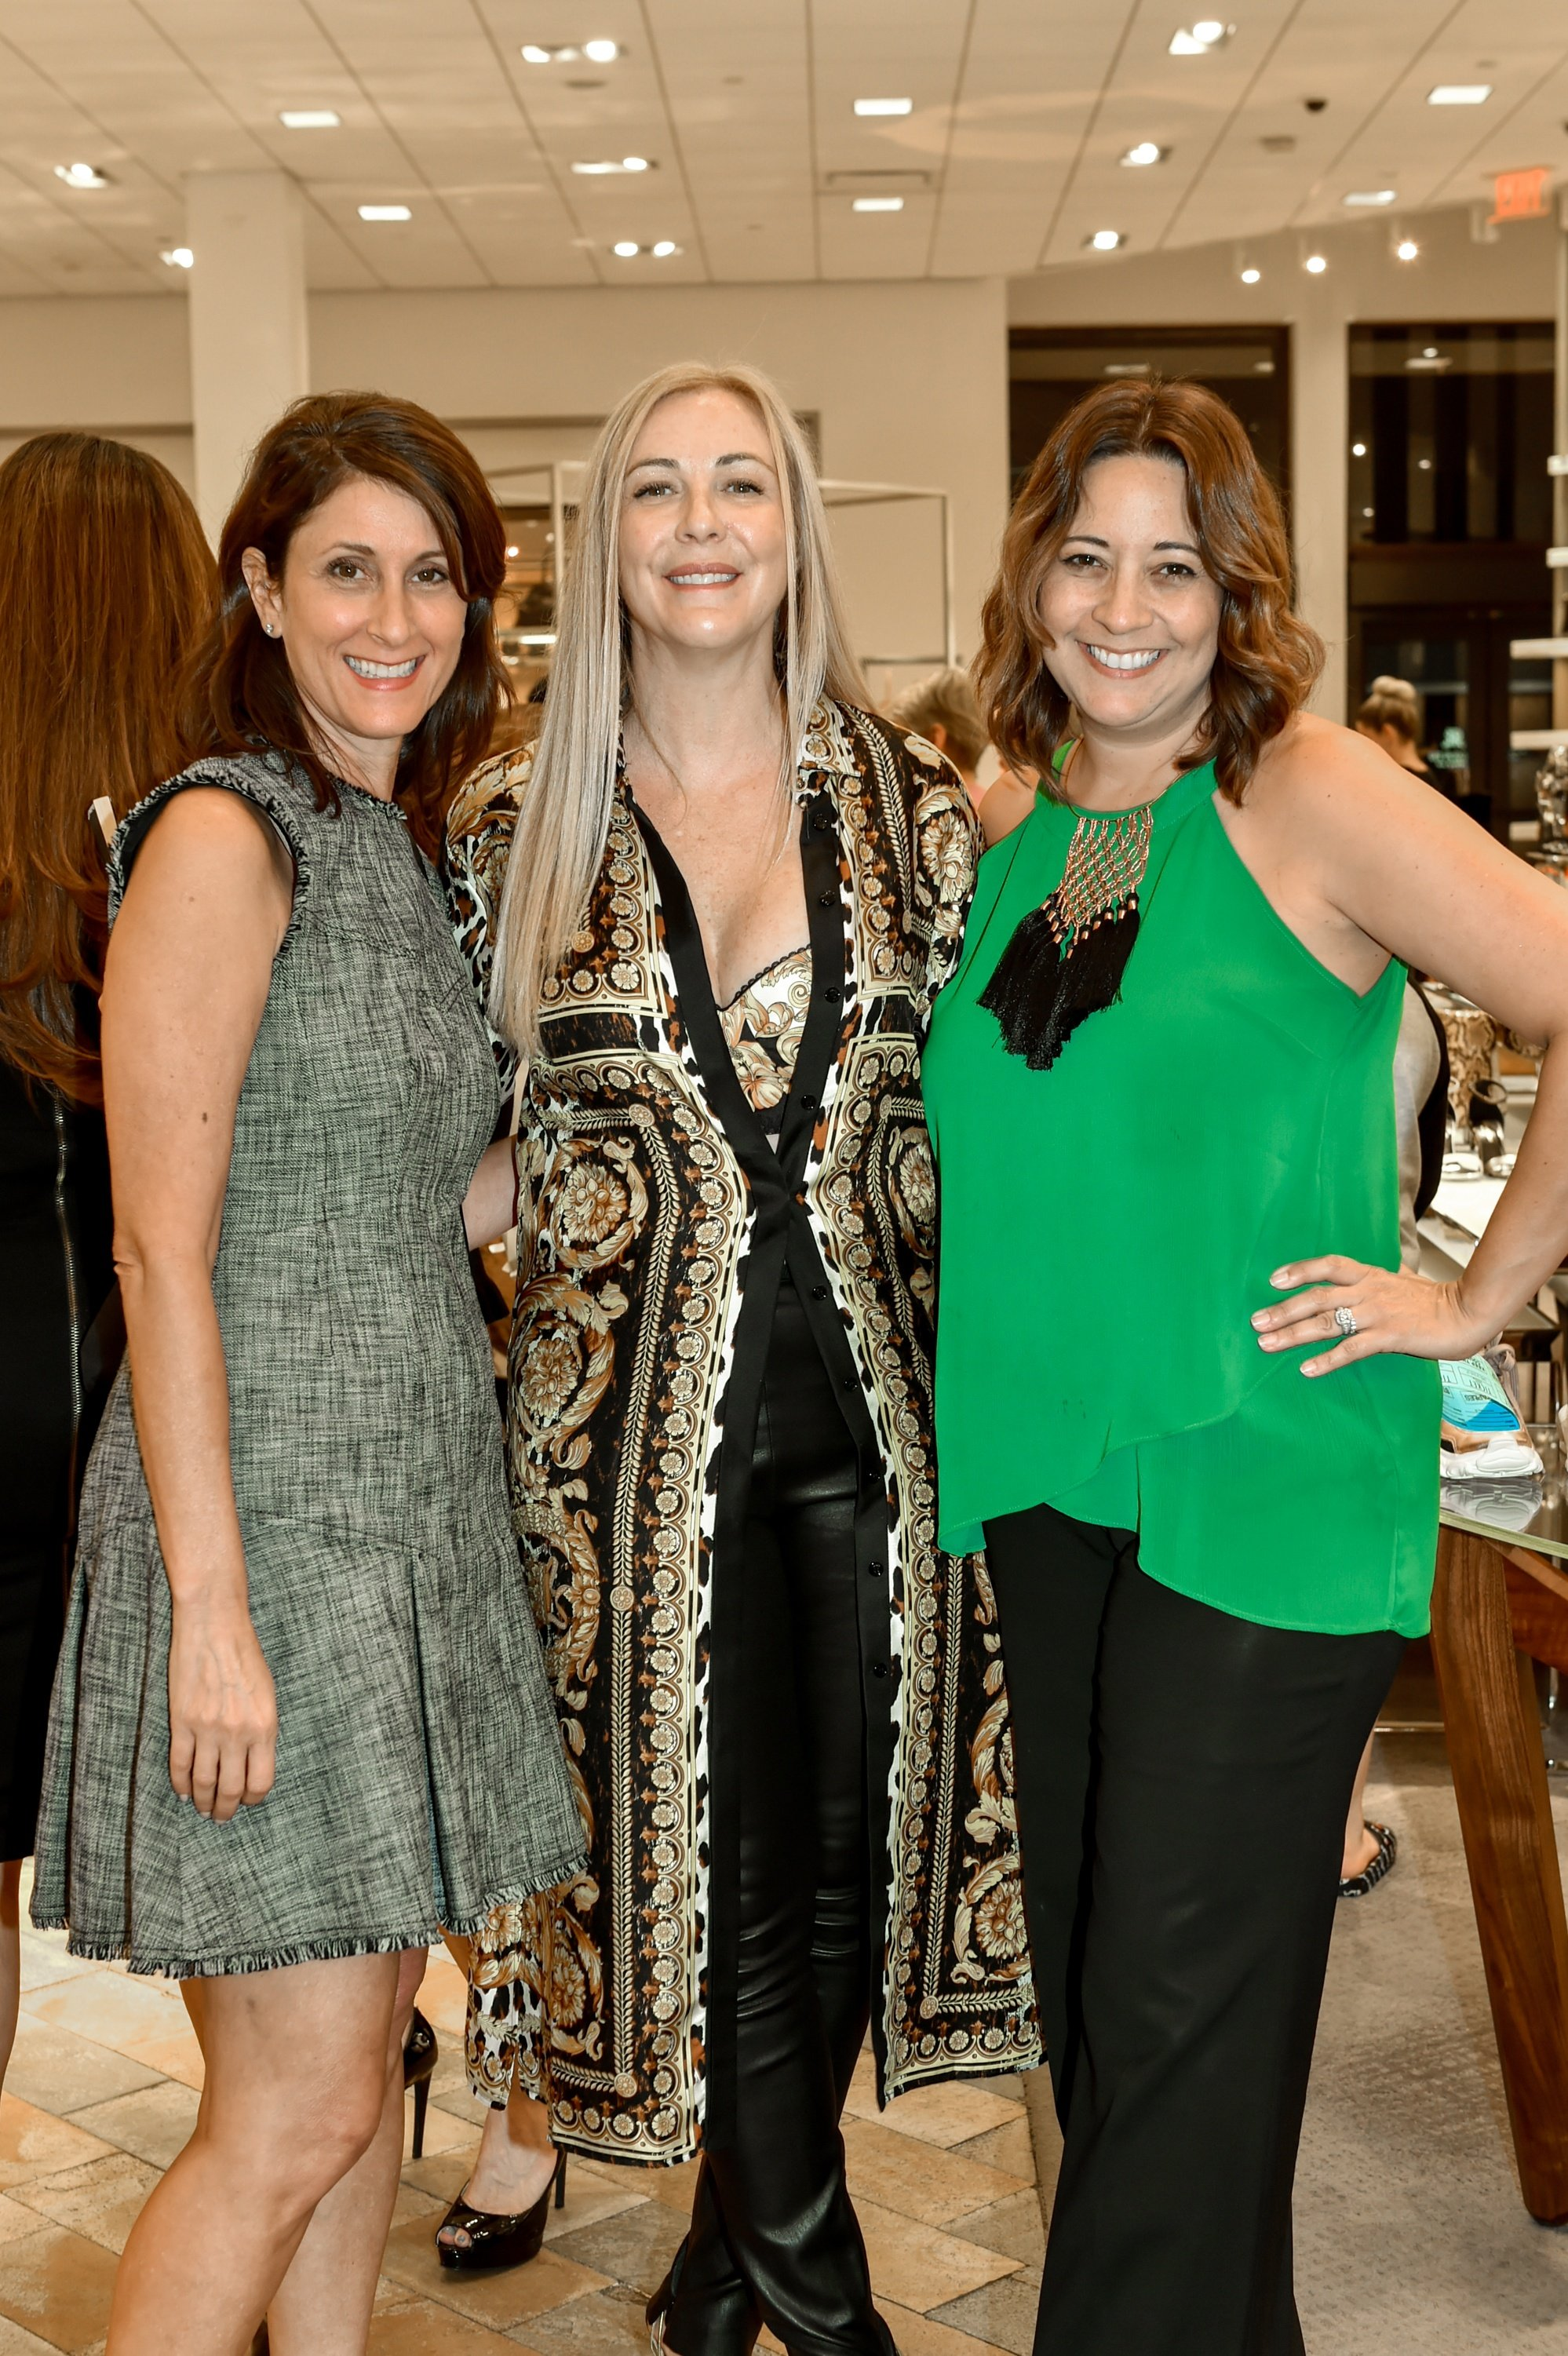 Julie Burnstein, Angela Birdman and Natalia Echeverria-Sol